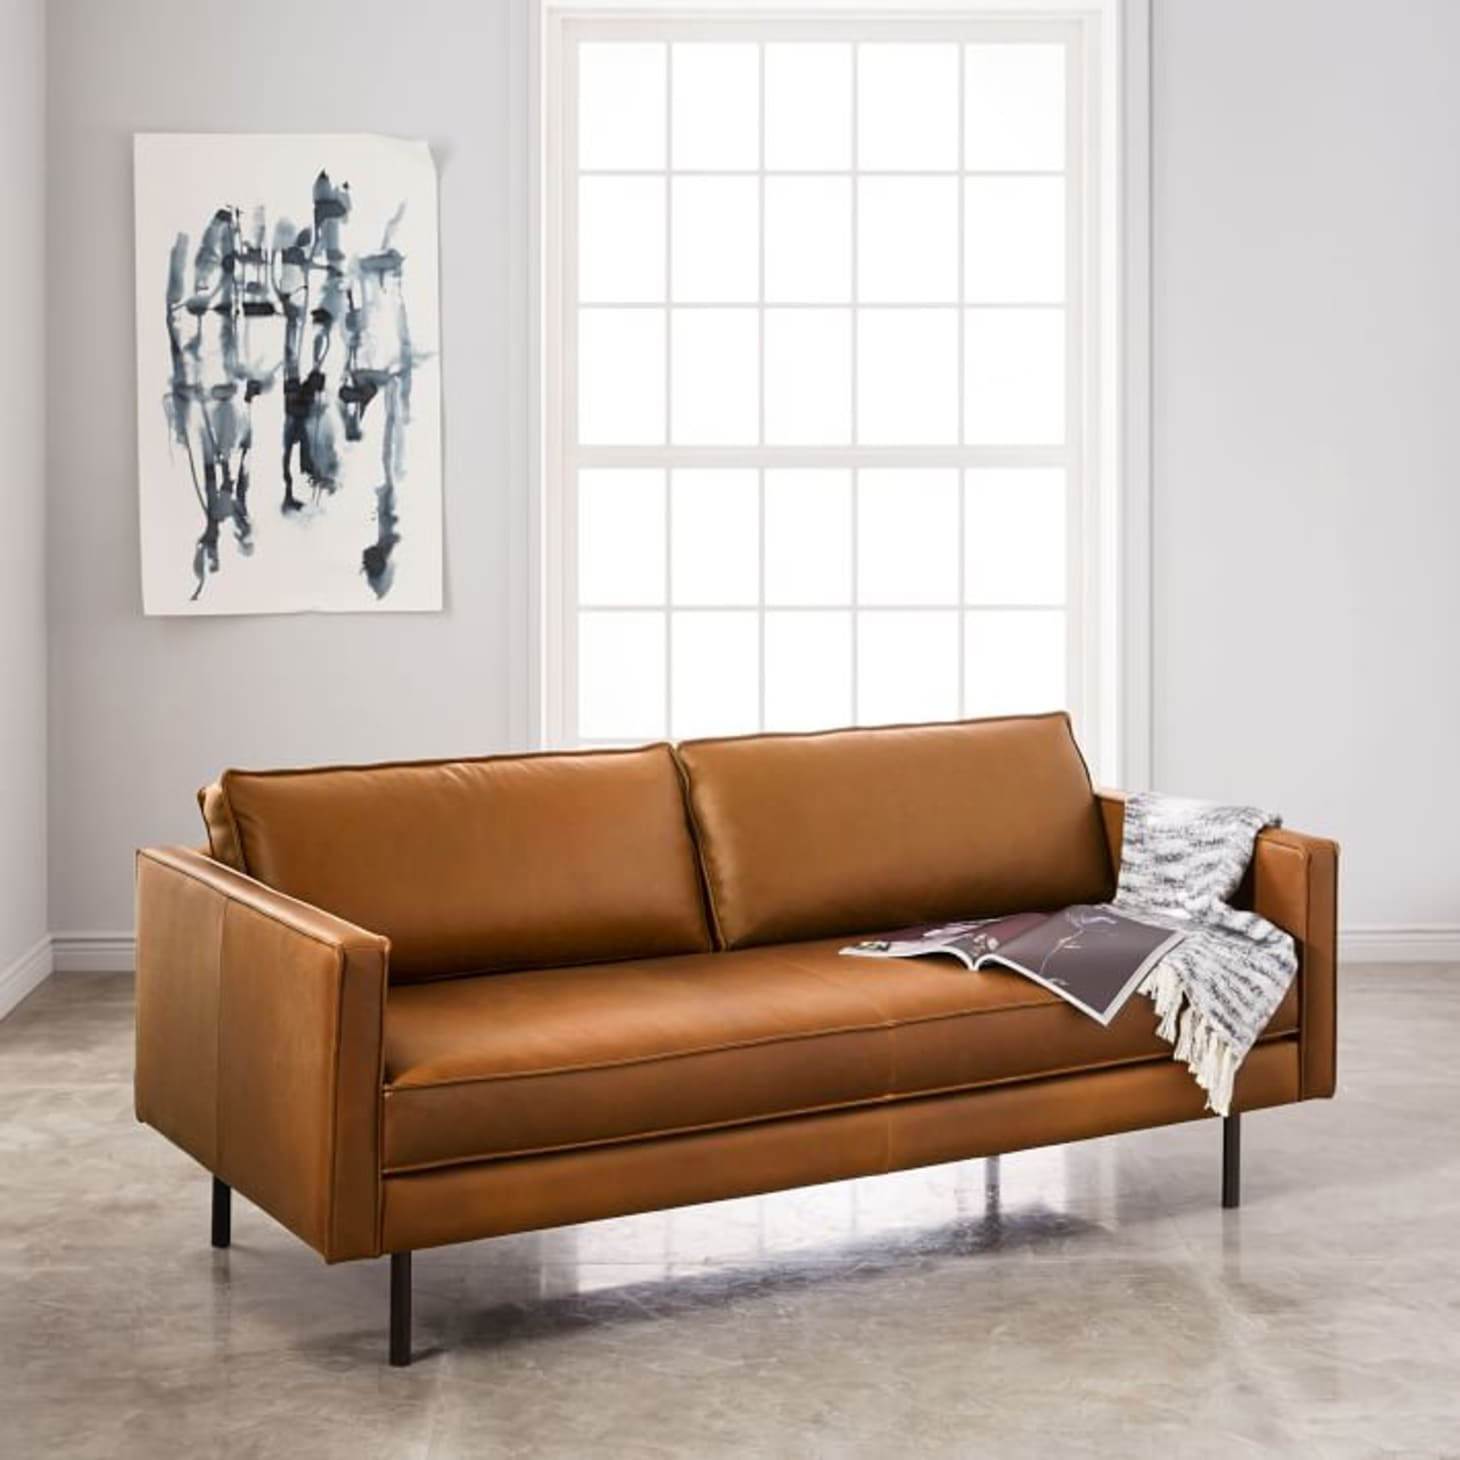 Phenomenal Tan Leather Sofa Trend Caramel Leather Sofa Apartment Onthecornerstone Fun Painted Chair Ideas Images Onthecornerstoneorg